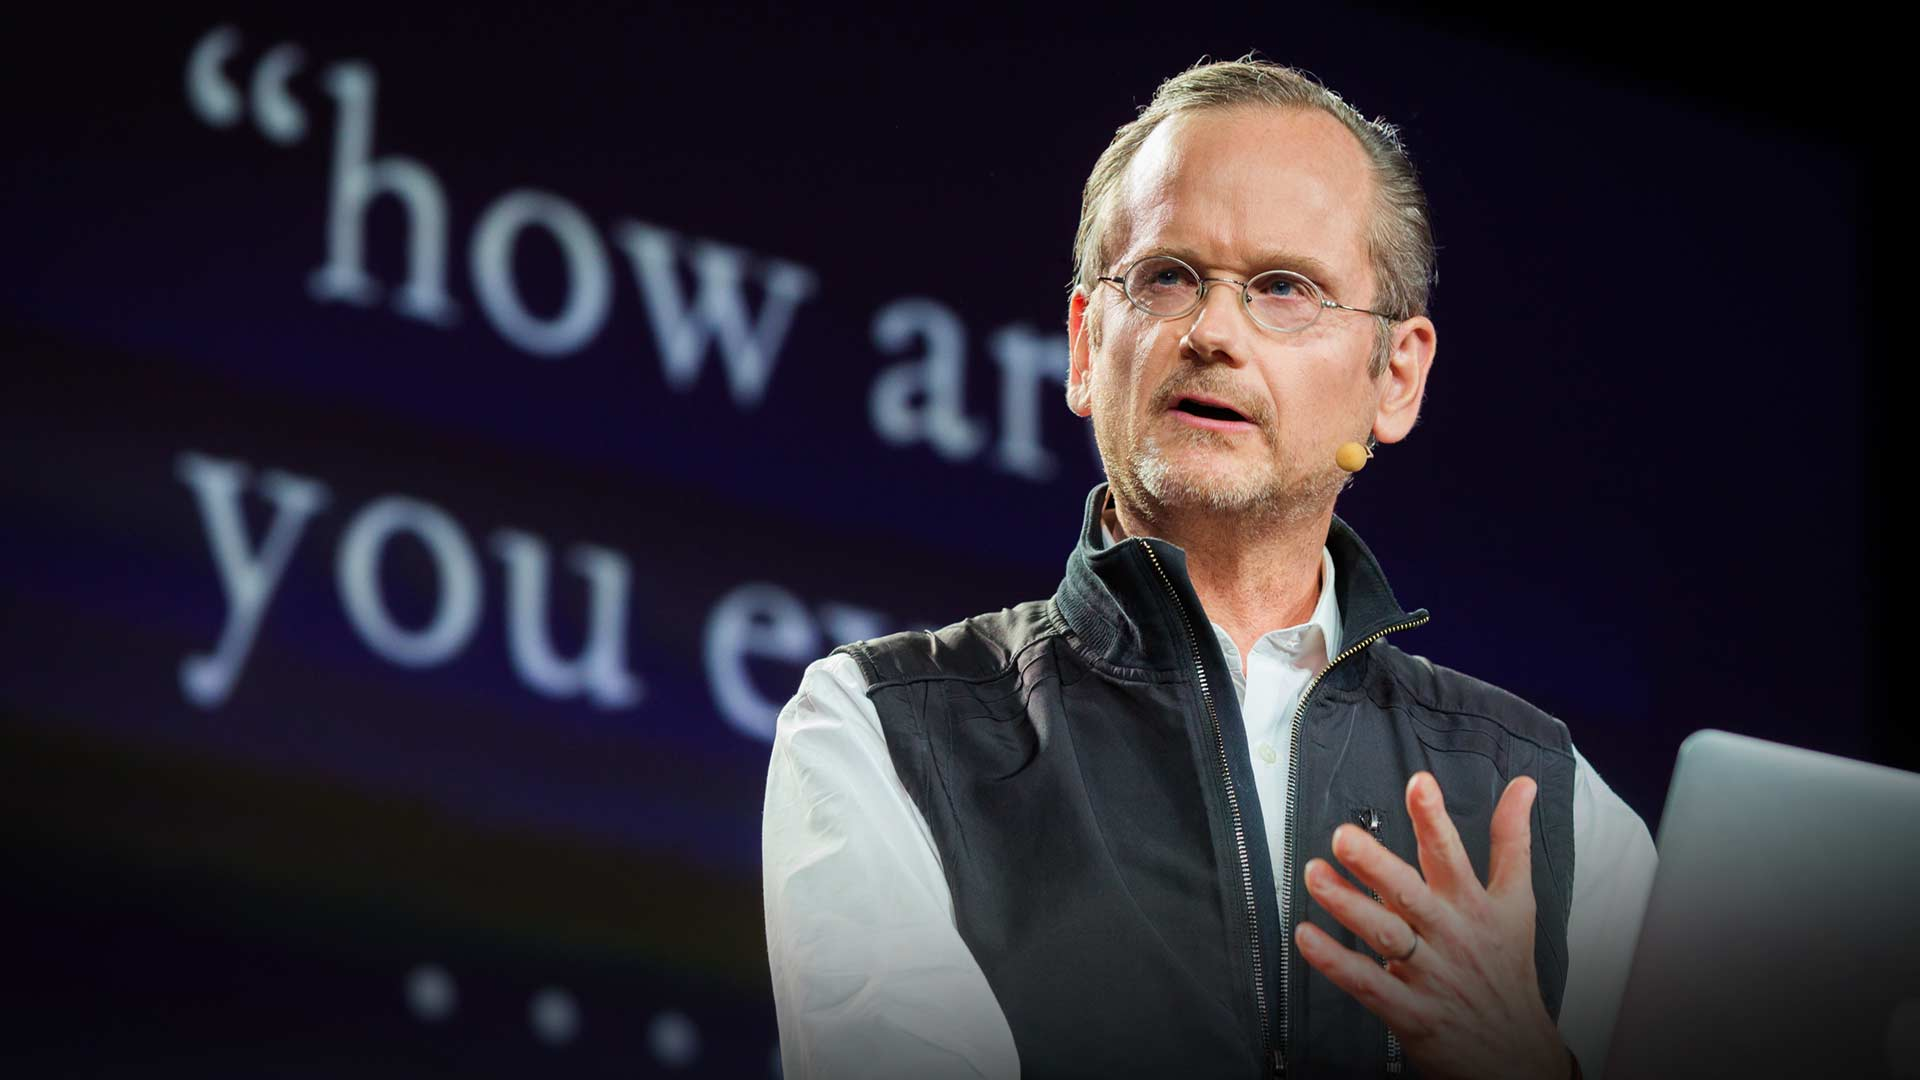 Lawrence Lessig: The unstoppable walk to political reform thumbnail